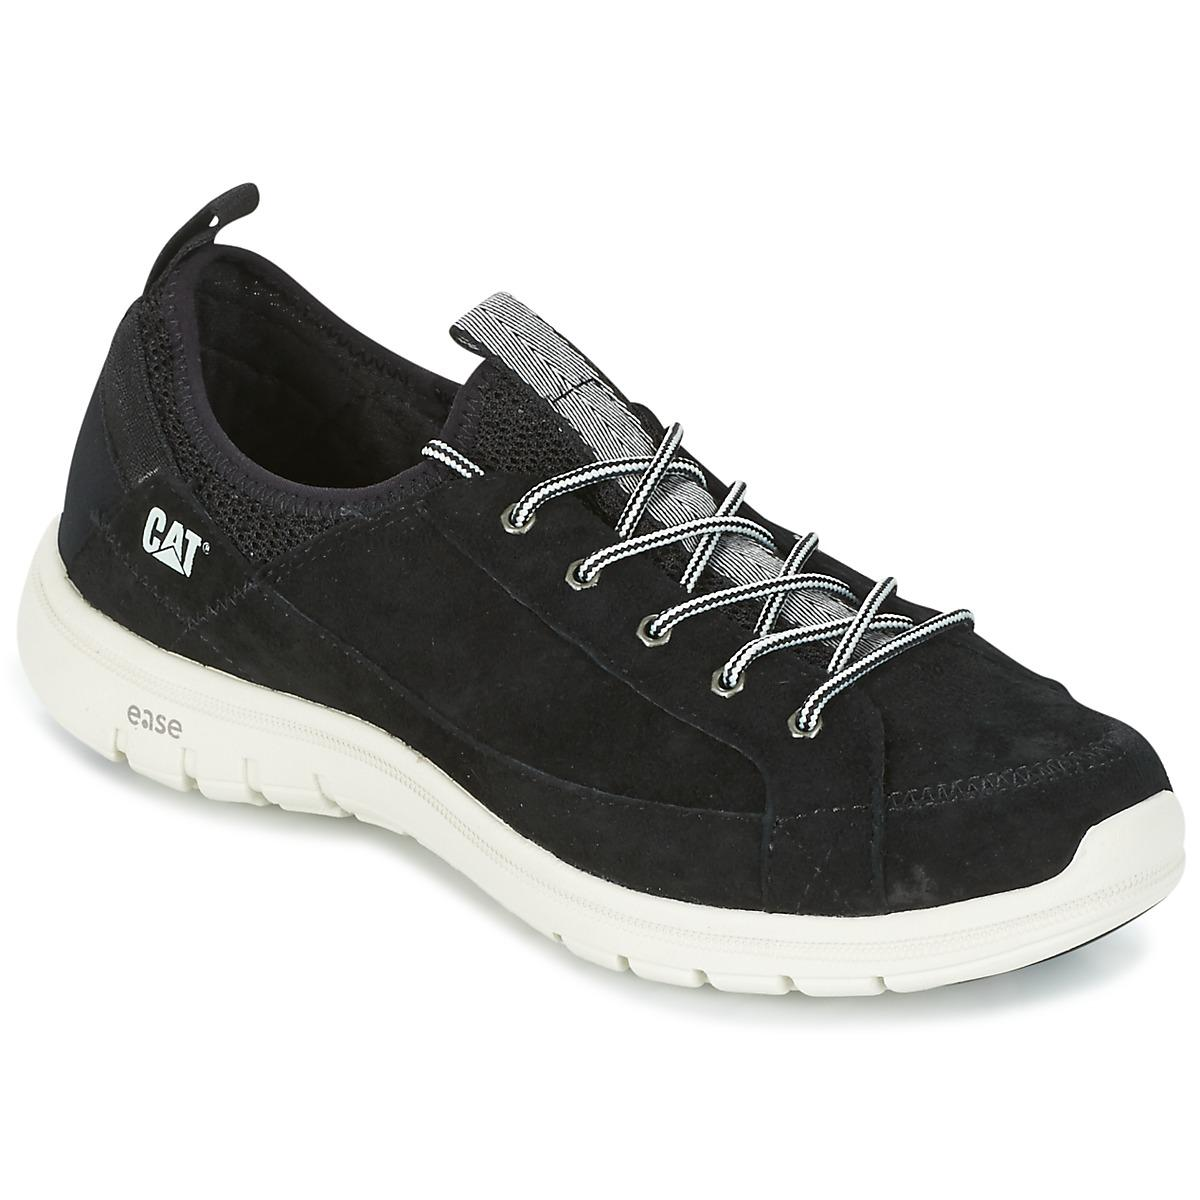 5ef2f2f0ff8 Caterpillar Swain Women s Shoes (trainers) In Black in Black - Lyst